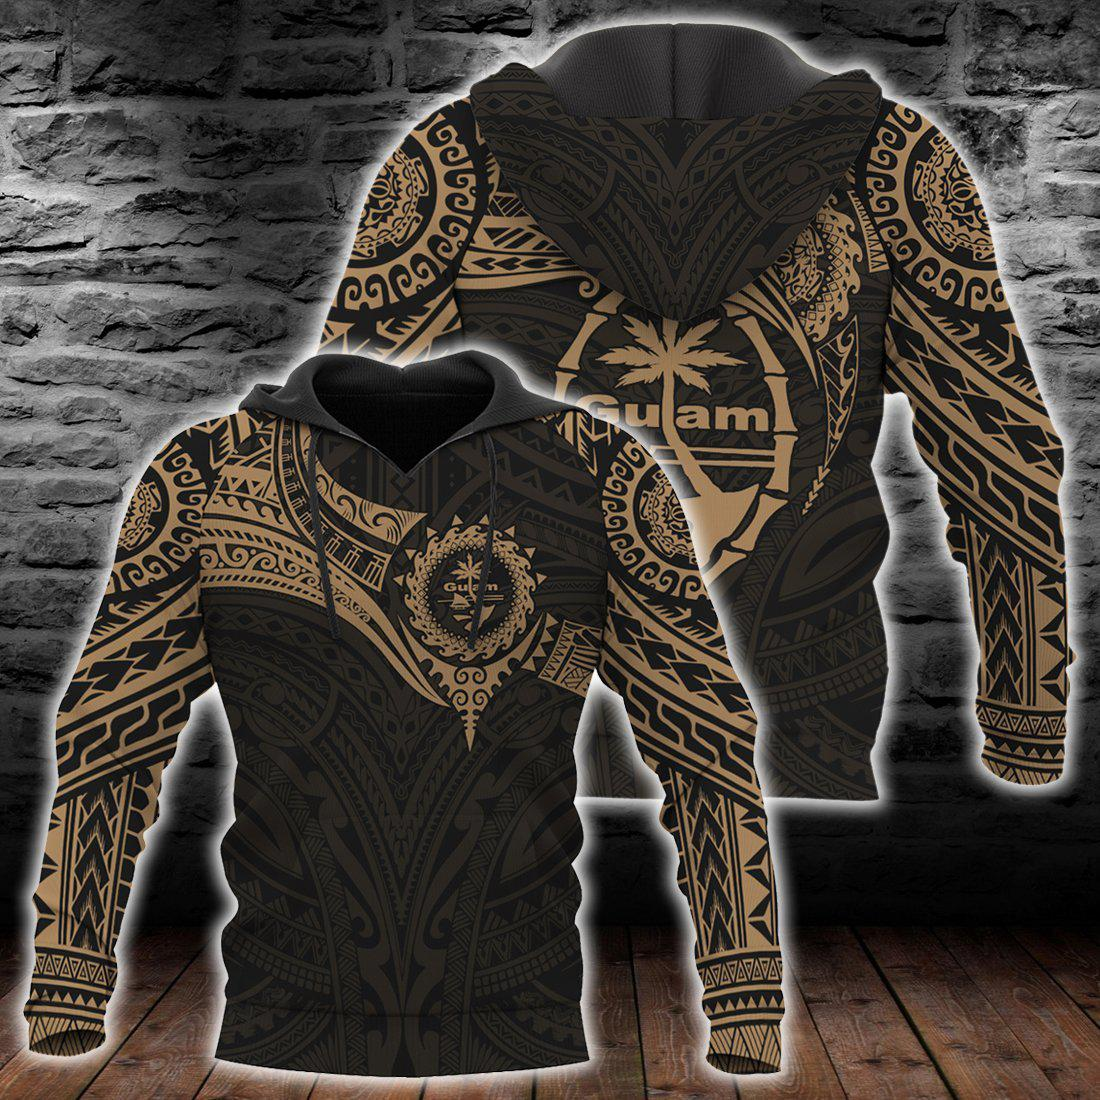 Guam Polynesian Gold Heart Shield all over print - luxamz